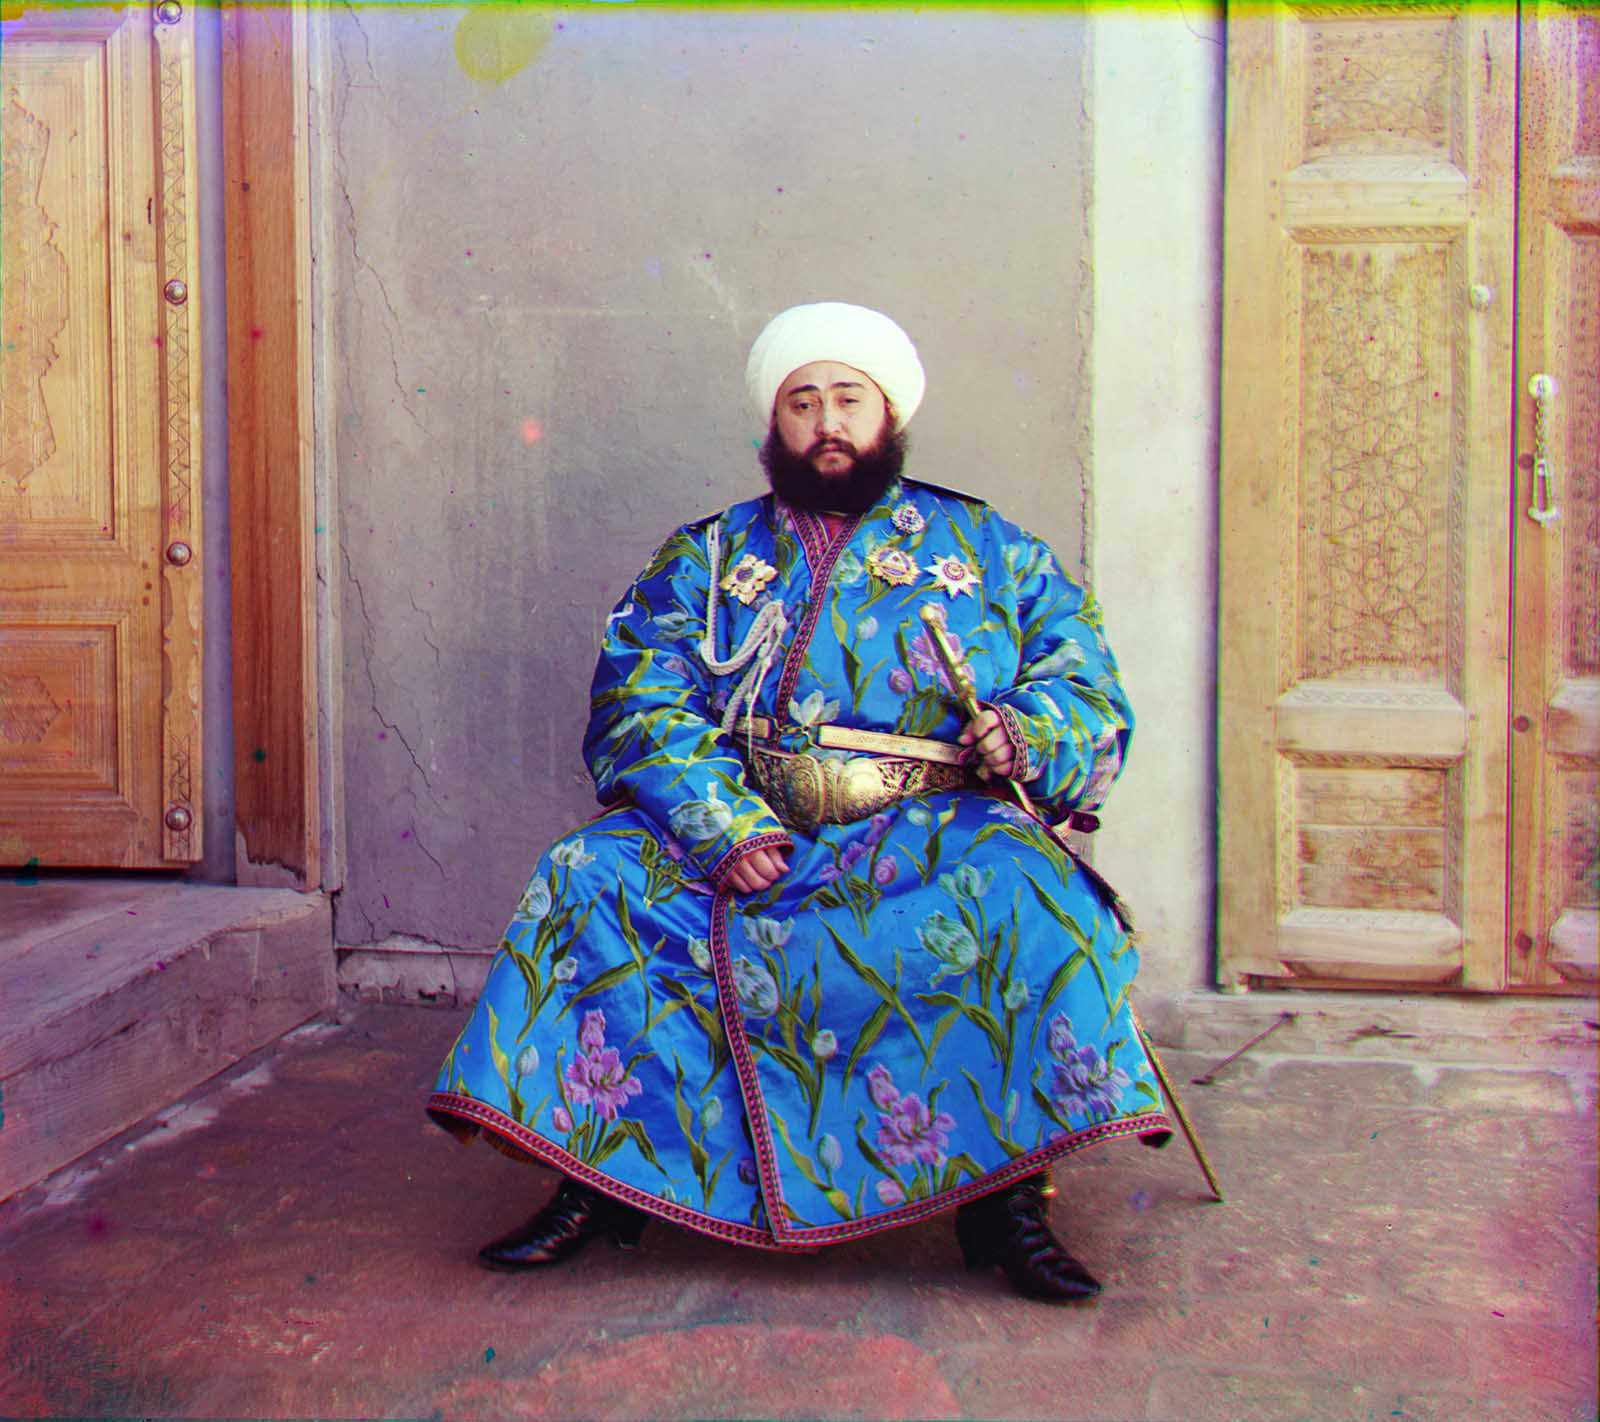 Emir Seyyid Mir Mohammed Alim Khan, the Emir of Bukhara, seated holding a sword in Bukhara, (present-day Uzbekistan), ca. 1910.